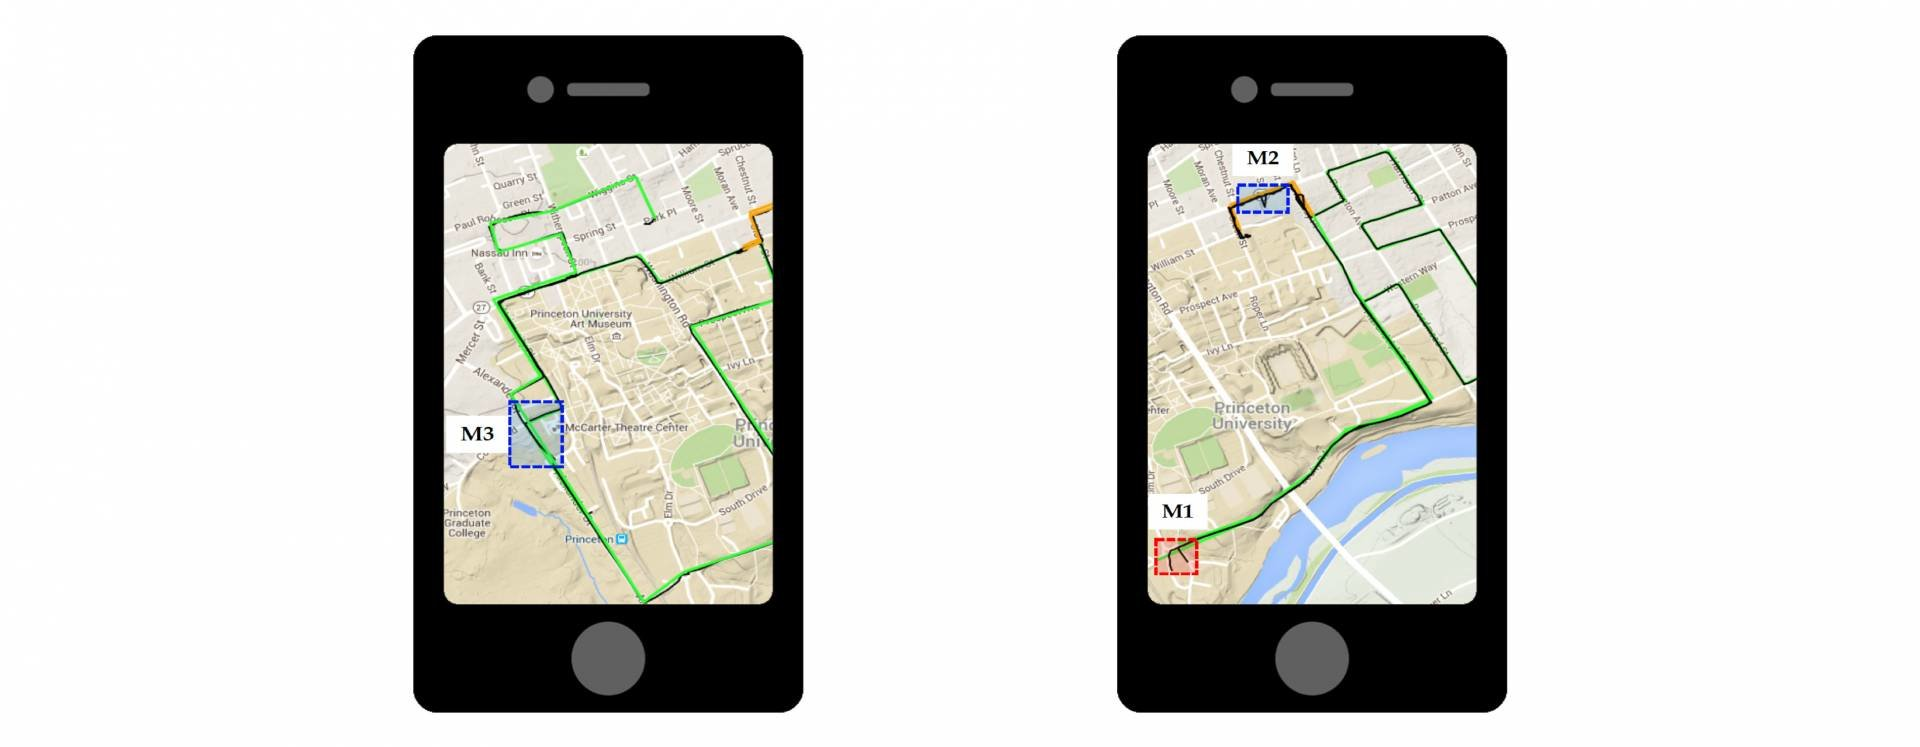 Phones vulnerable to location tracking even when GPS ...